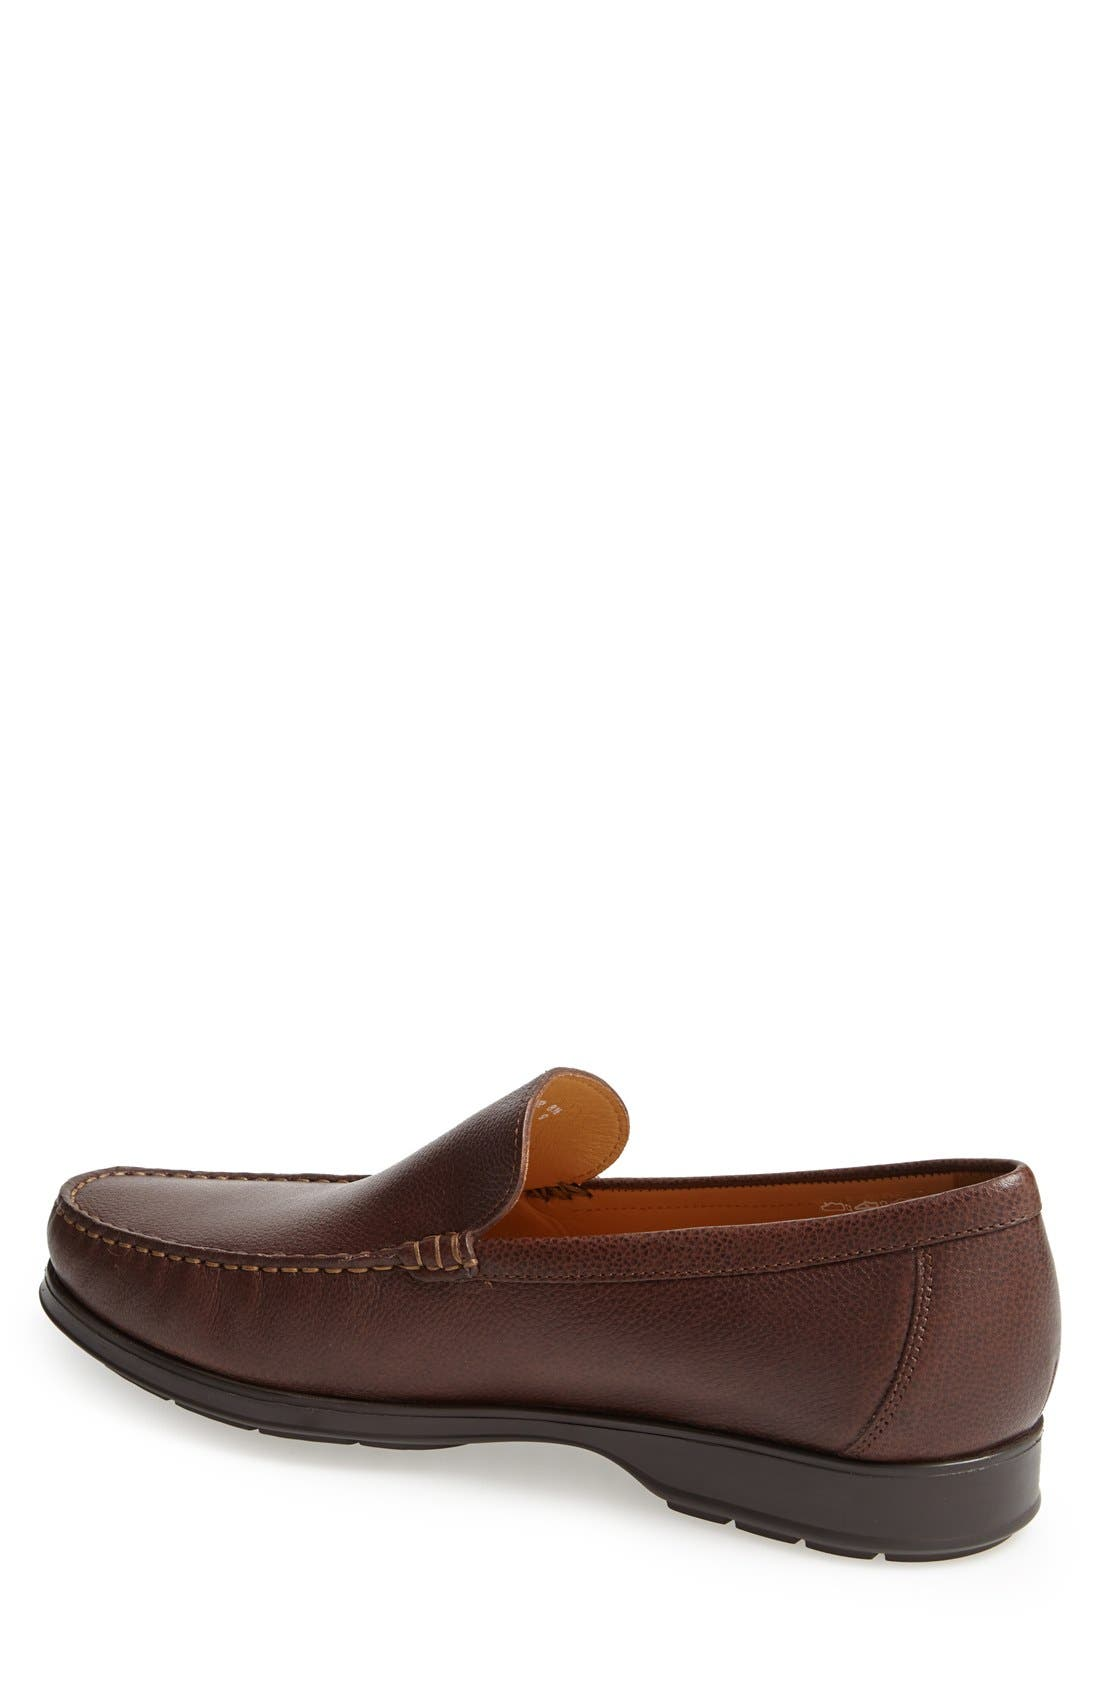 'Henri' Loafer,                             Alternate thumbnail 2, color,                             CHESTNUT LEATHER